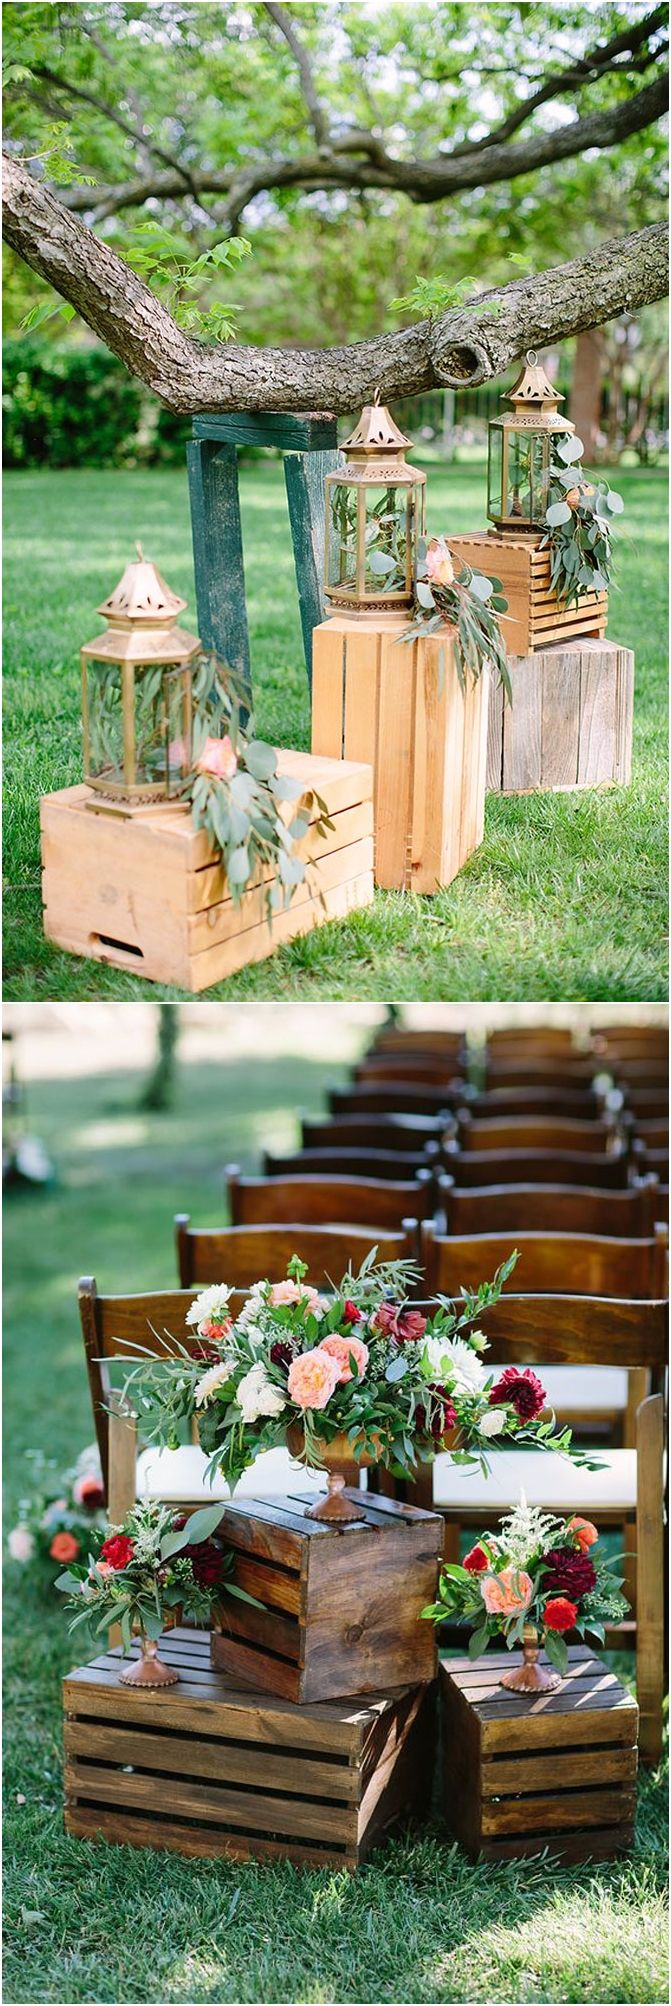 Wedding decoration ideas 2018  Rustic Woodsy Wedding Trend  Wooden Crates  Woodsy wedding